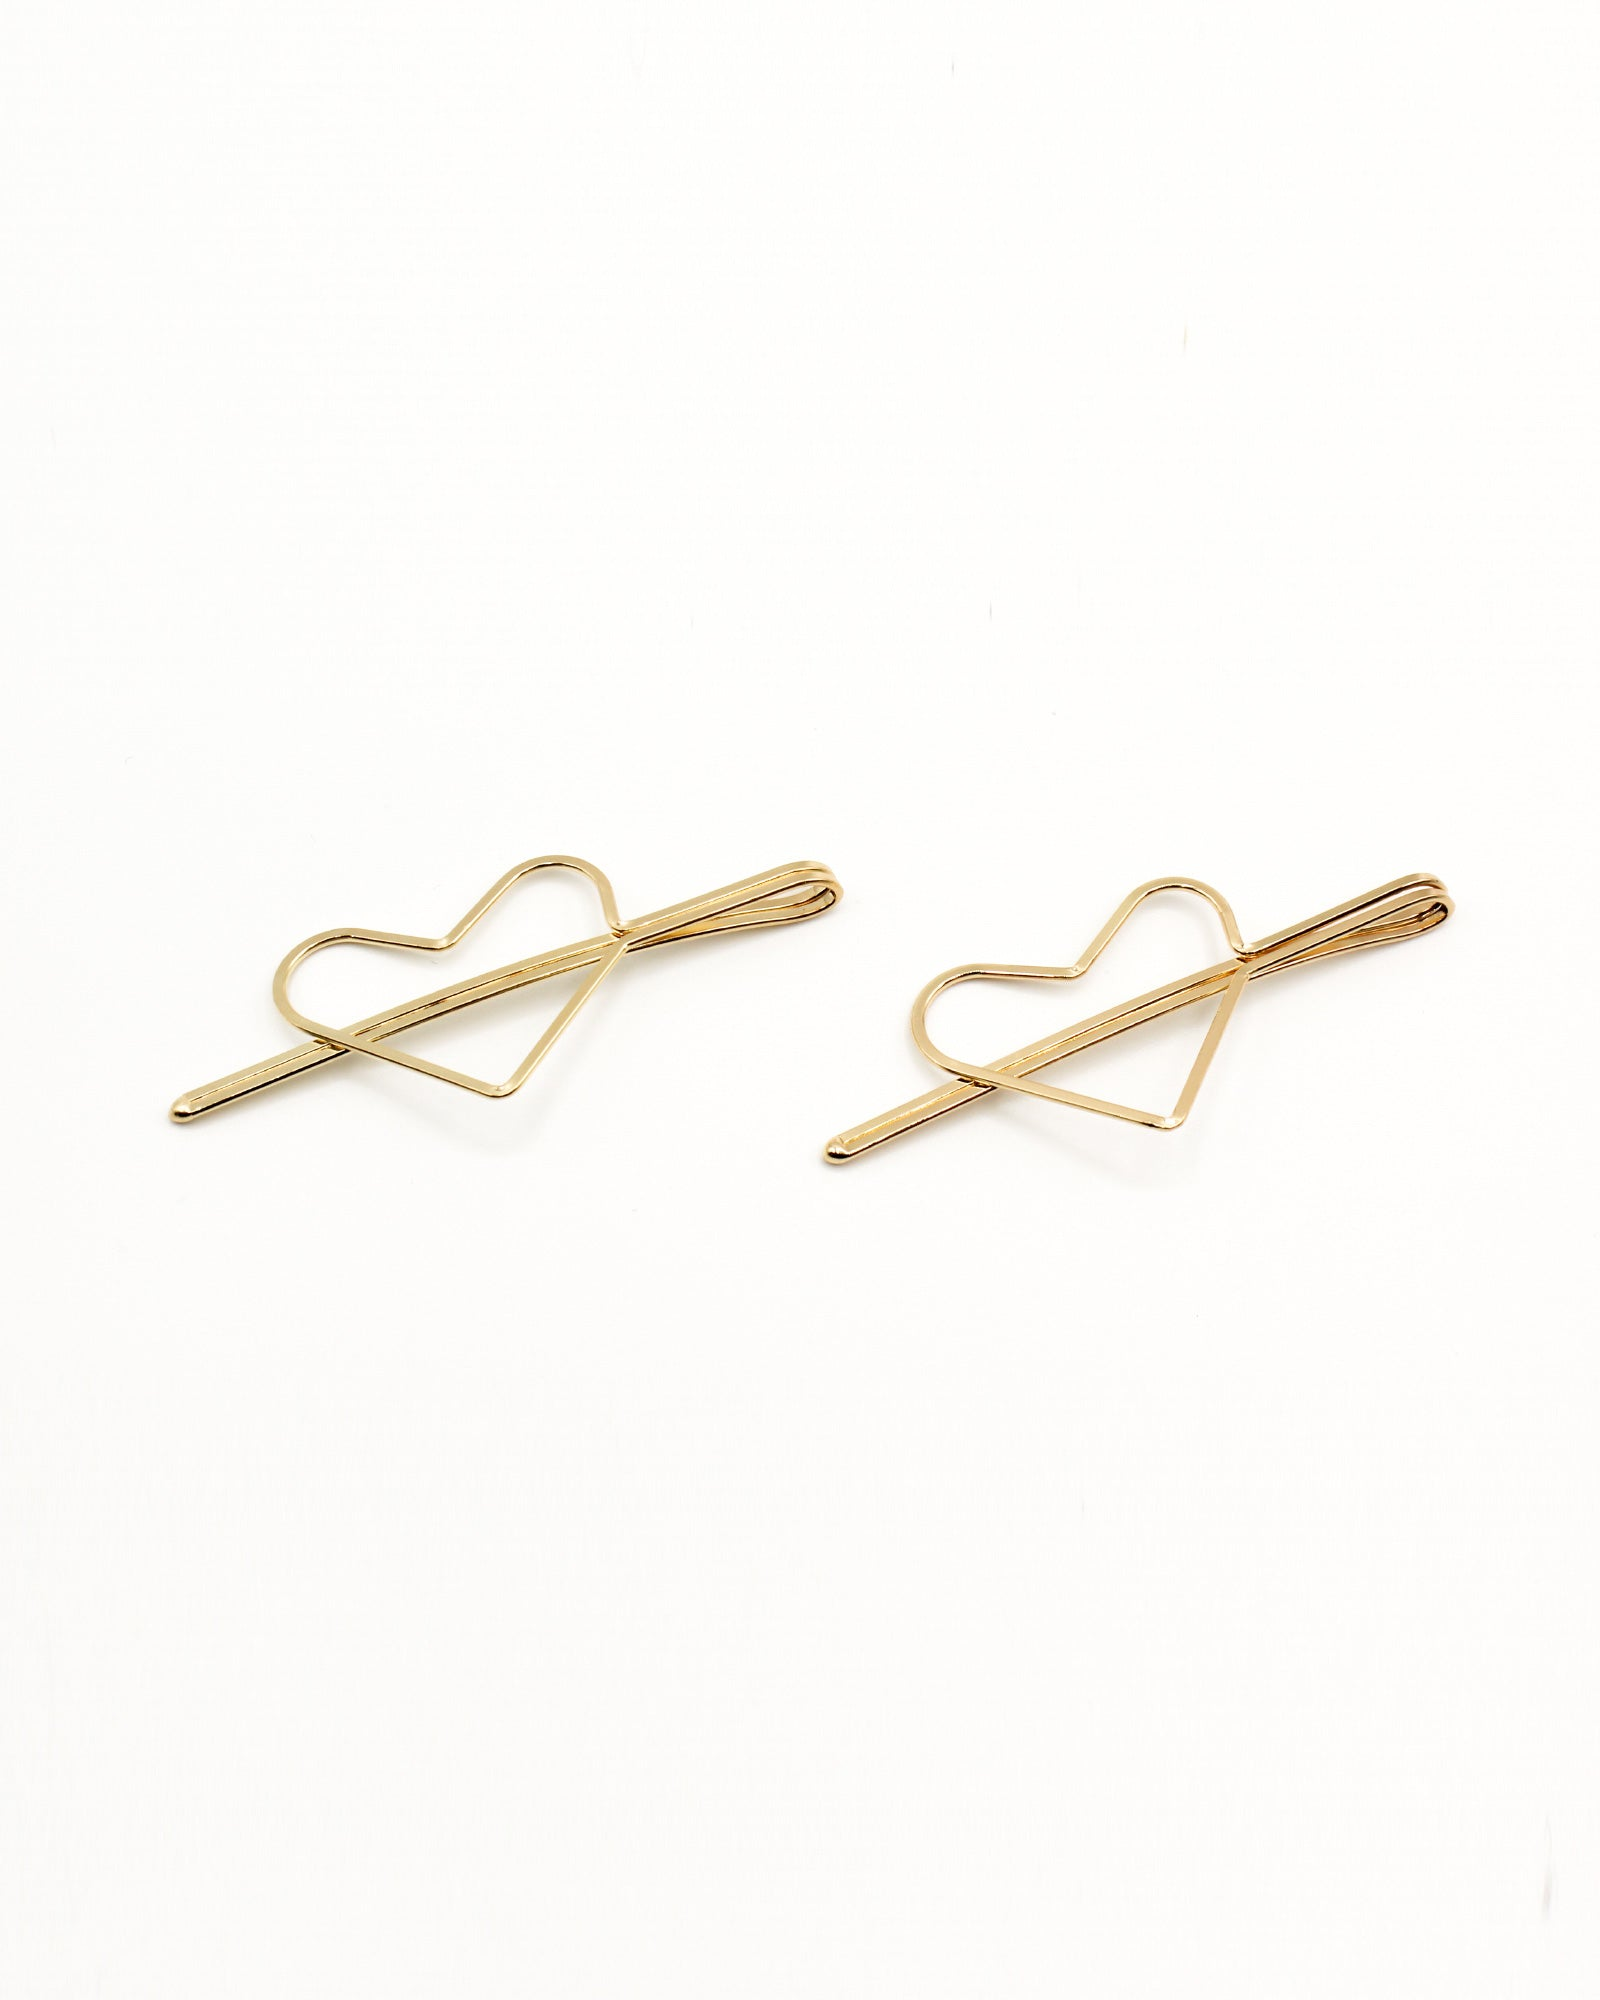 Fashion Q Shop Q Make Your Heart Smile Set of Gold Hair Pins KH3846G